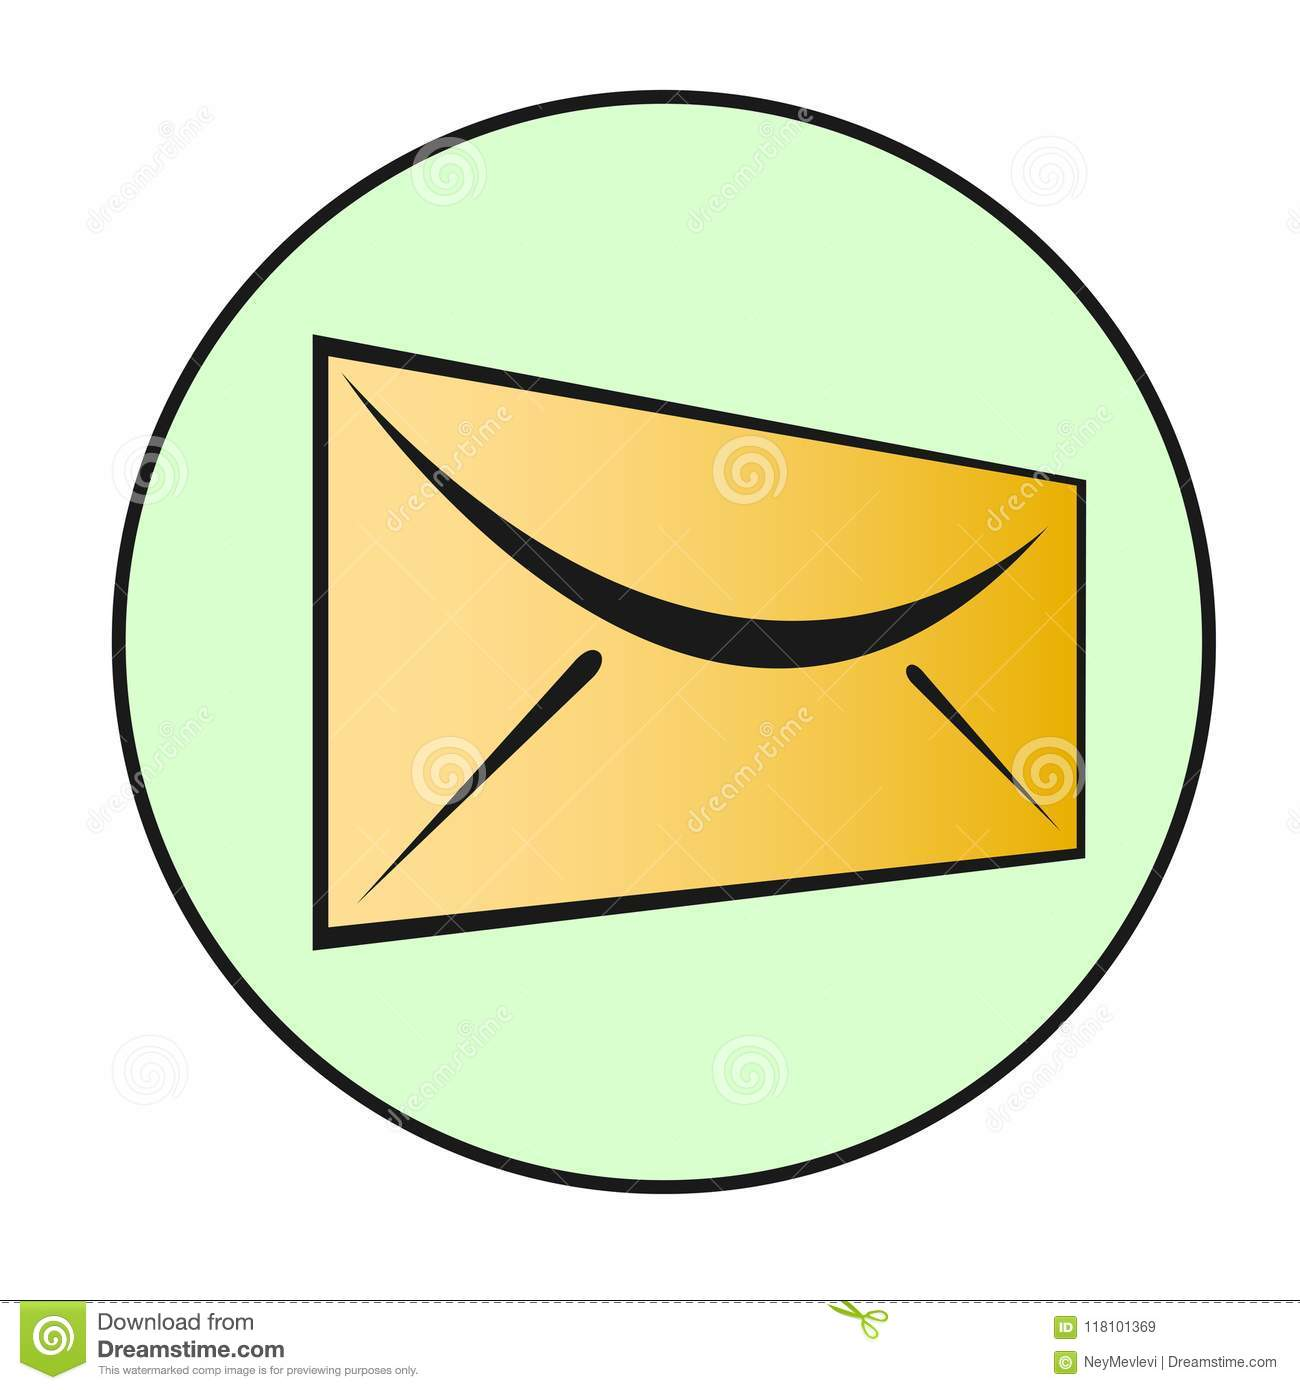 Envelope icon for button or symbol